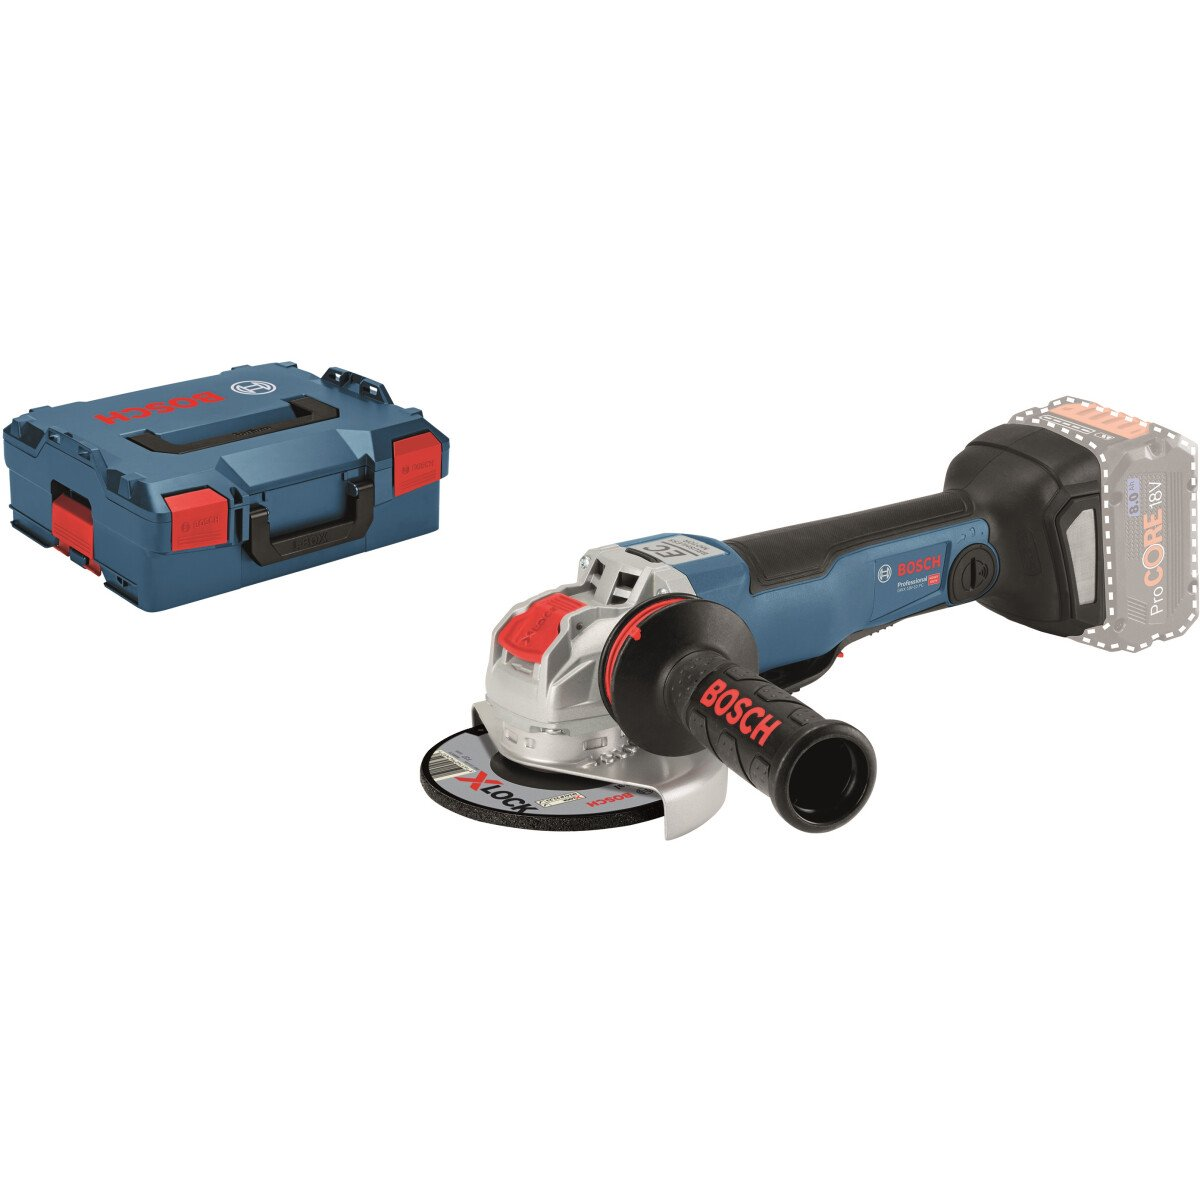 Bosch GWX 18V-10 PC Body Only 18v Brushless X-LOCK Connected 125mm Angle Grinder with Paddle Switch in L-Boxx